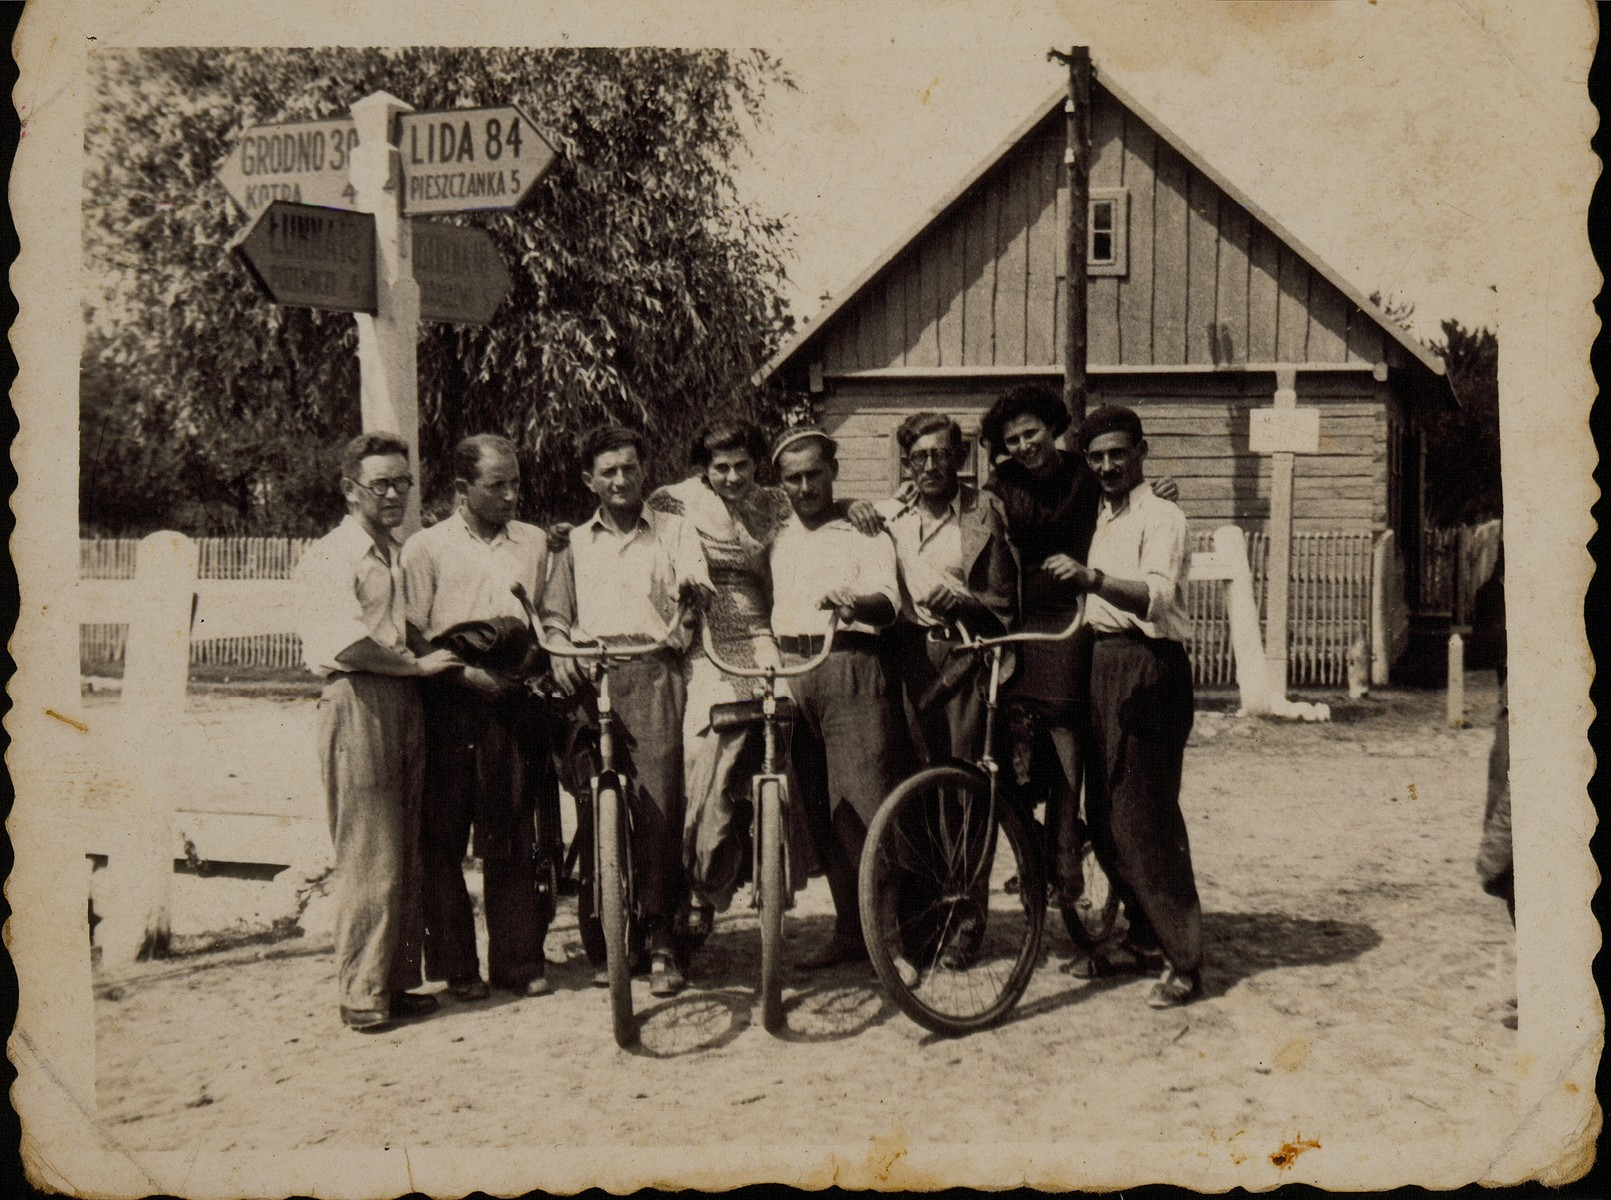 Winners of a bicycle race sponsored by local Zionist groups, pose with their bicycles next to a road sign in the village of Skidel.  Among those pictured is Shabbtai (Shepske) Sonenson (third from the left), who represented the Betar organization in Eisiskes.  Shepske was killed by the Germans during the September 1941 mass shooting action in Eisiskes.